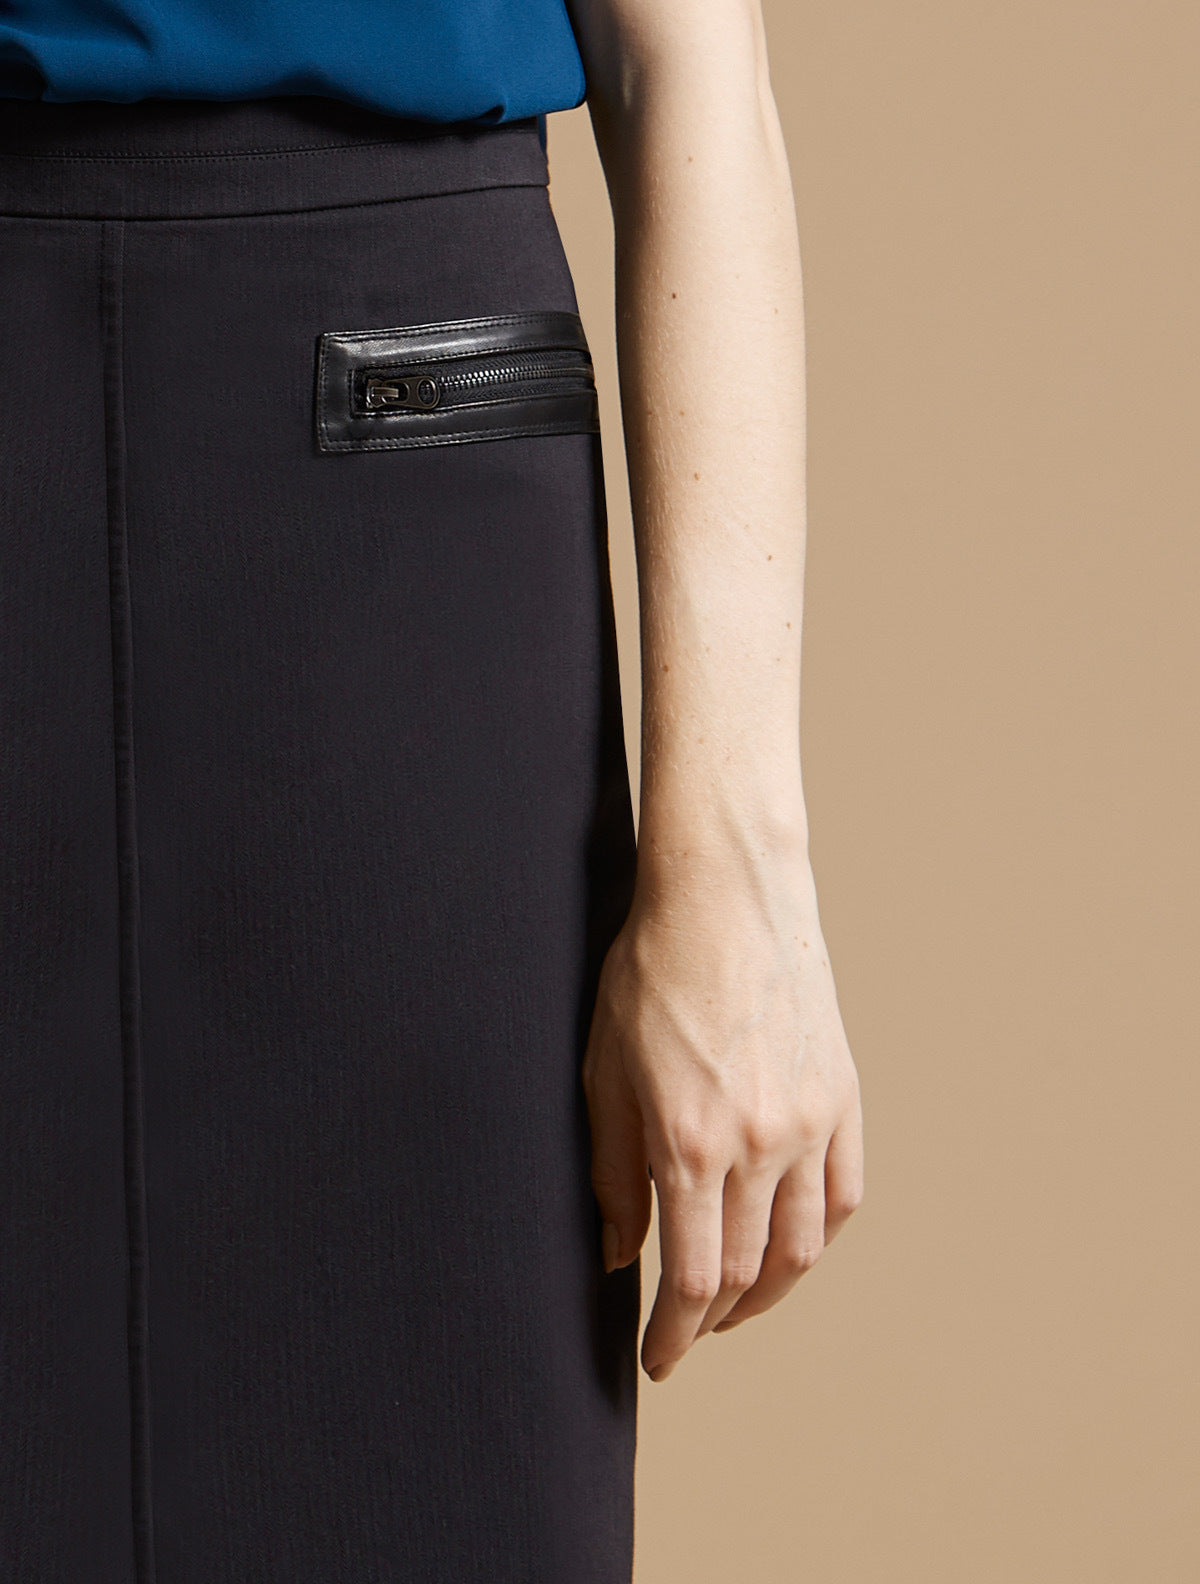 SLIM PENCIL SKIRT WITH ZIPPER DETAIL - Halston